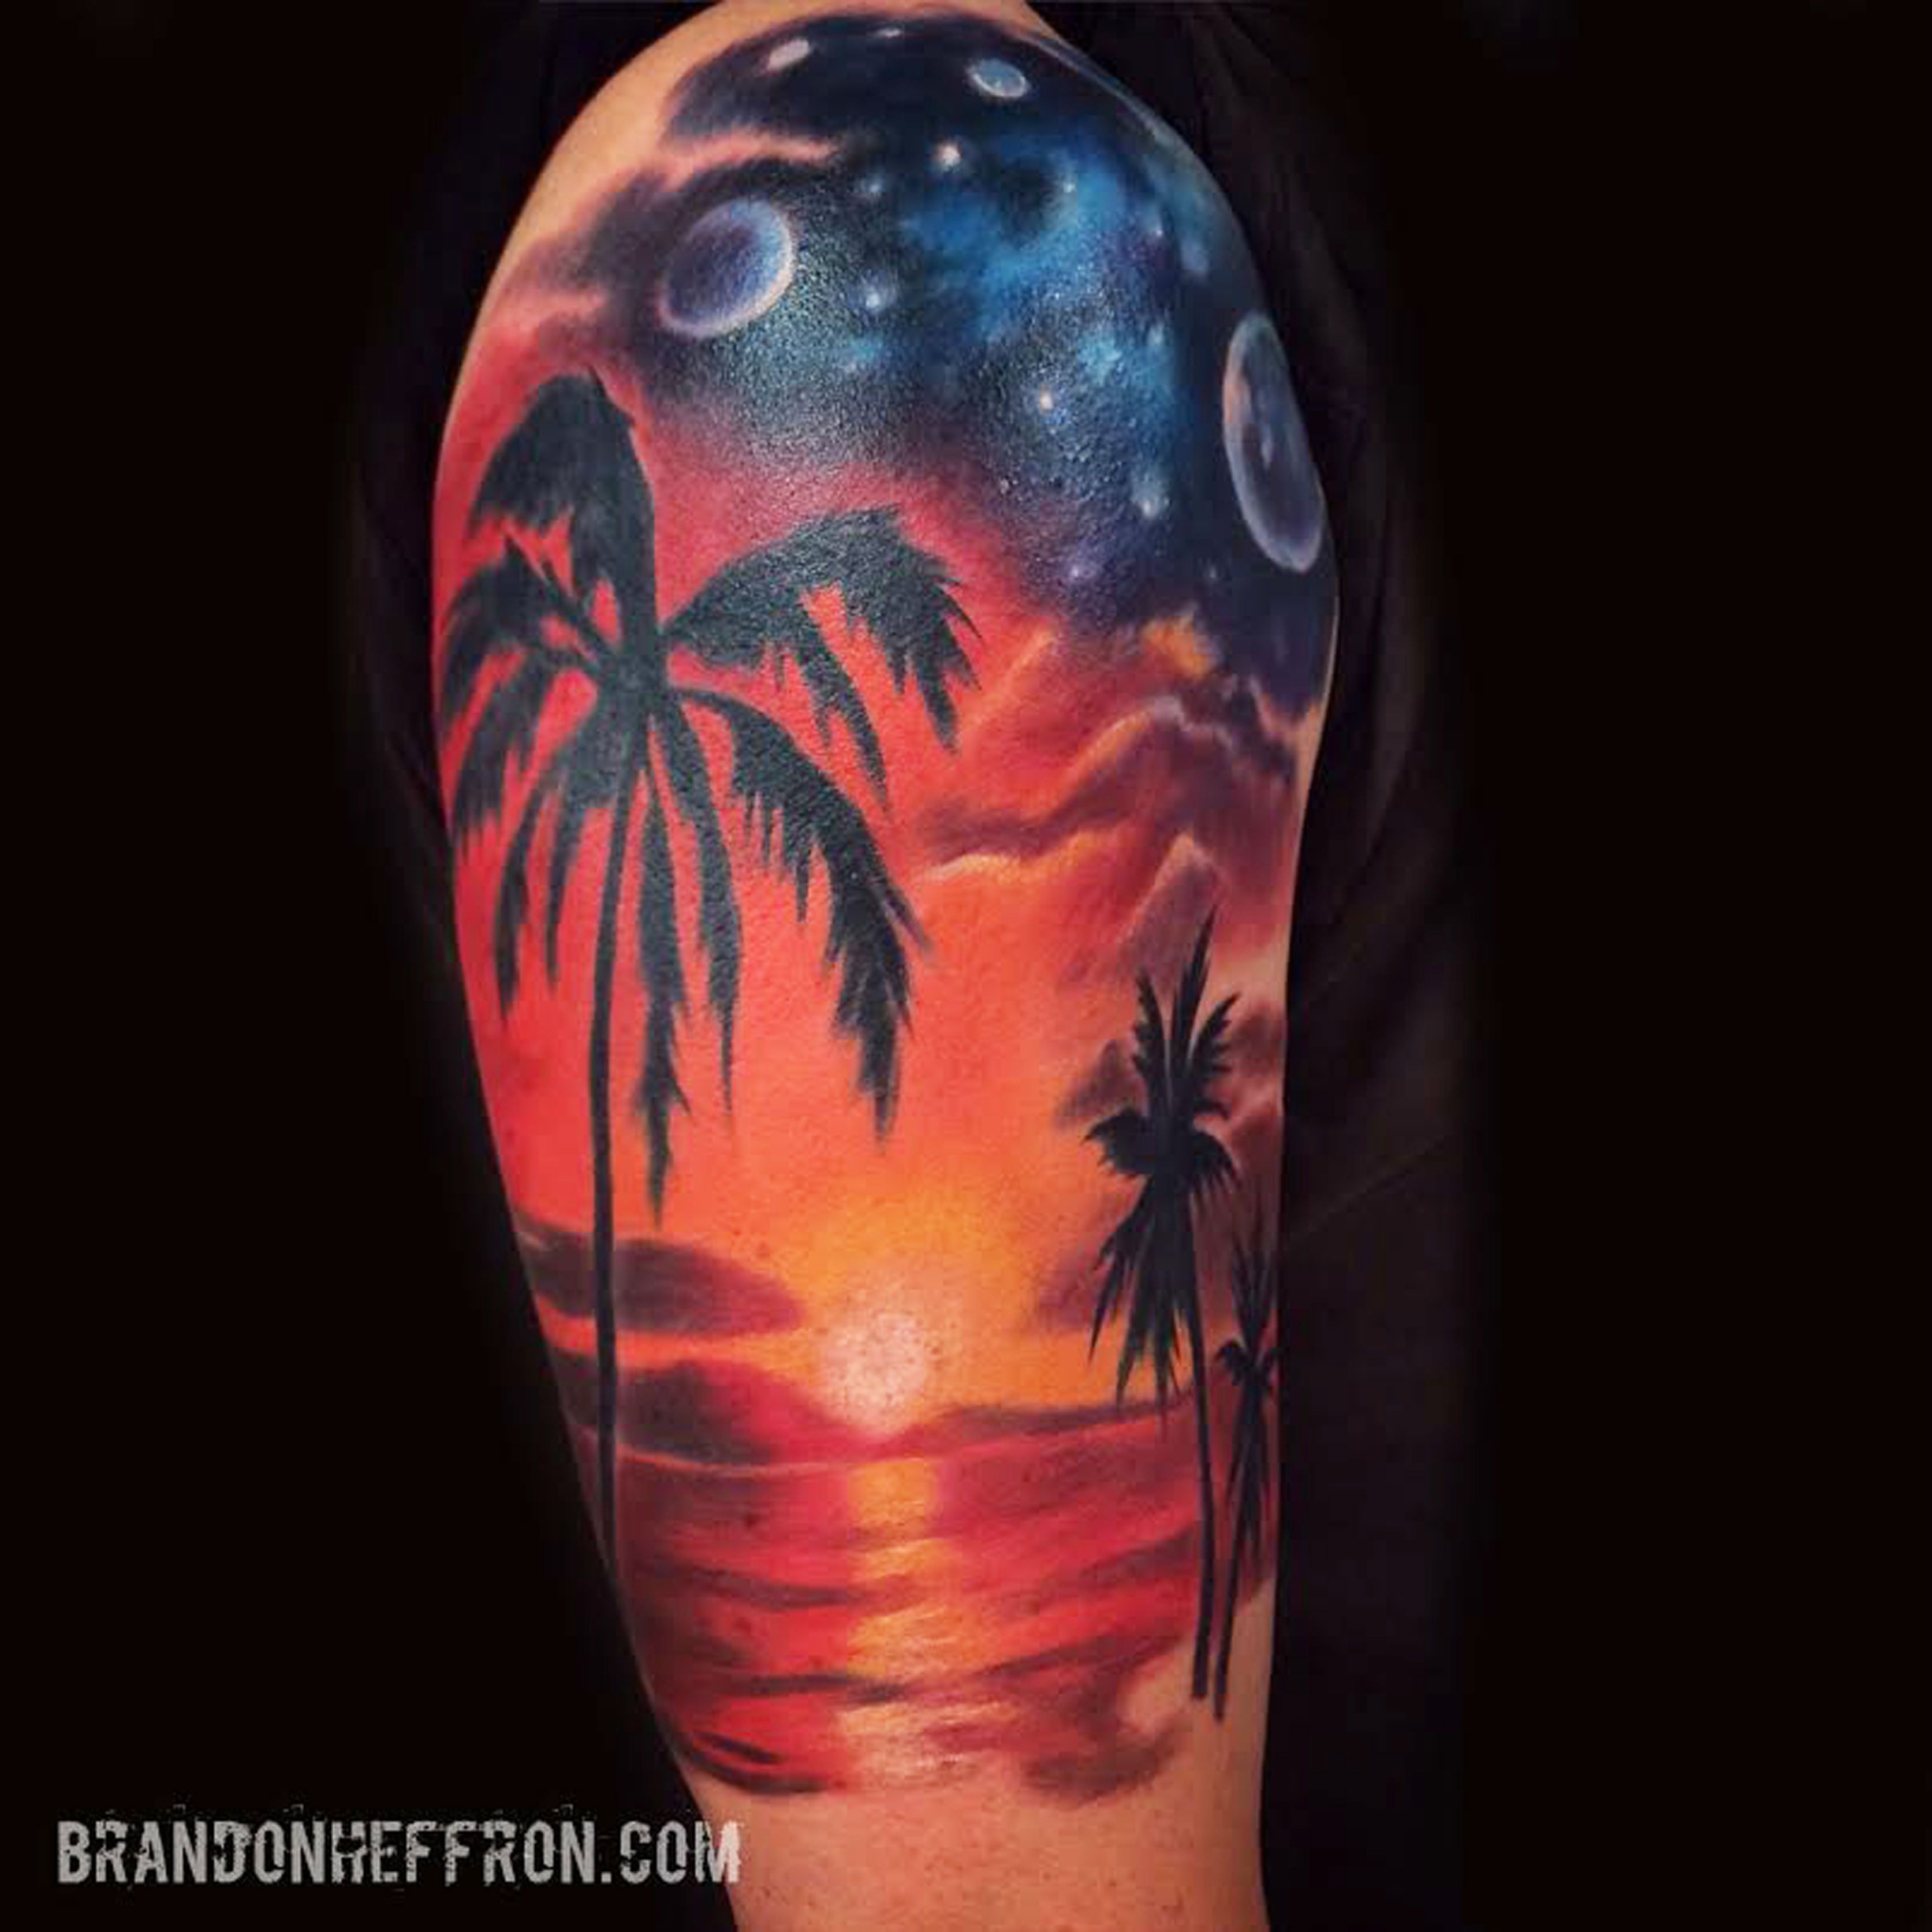 Sunset Night Beach Tattoo Tattoos Tattoos Sunset Tattoos Ocean intended for size 3346 X 3346